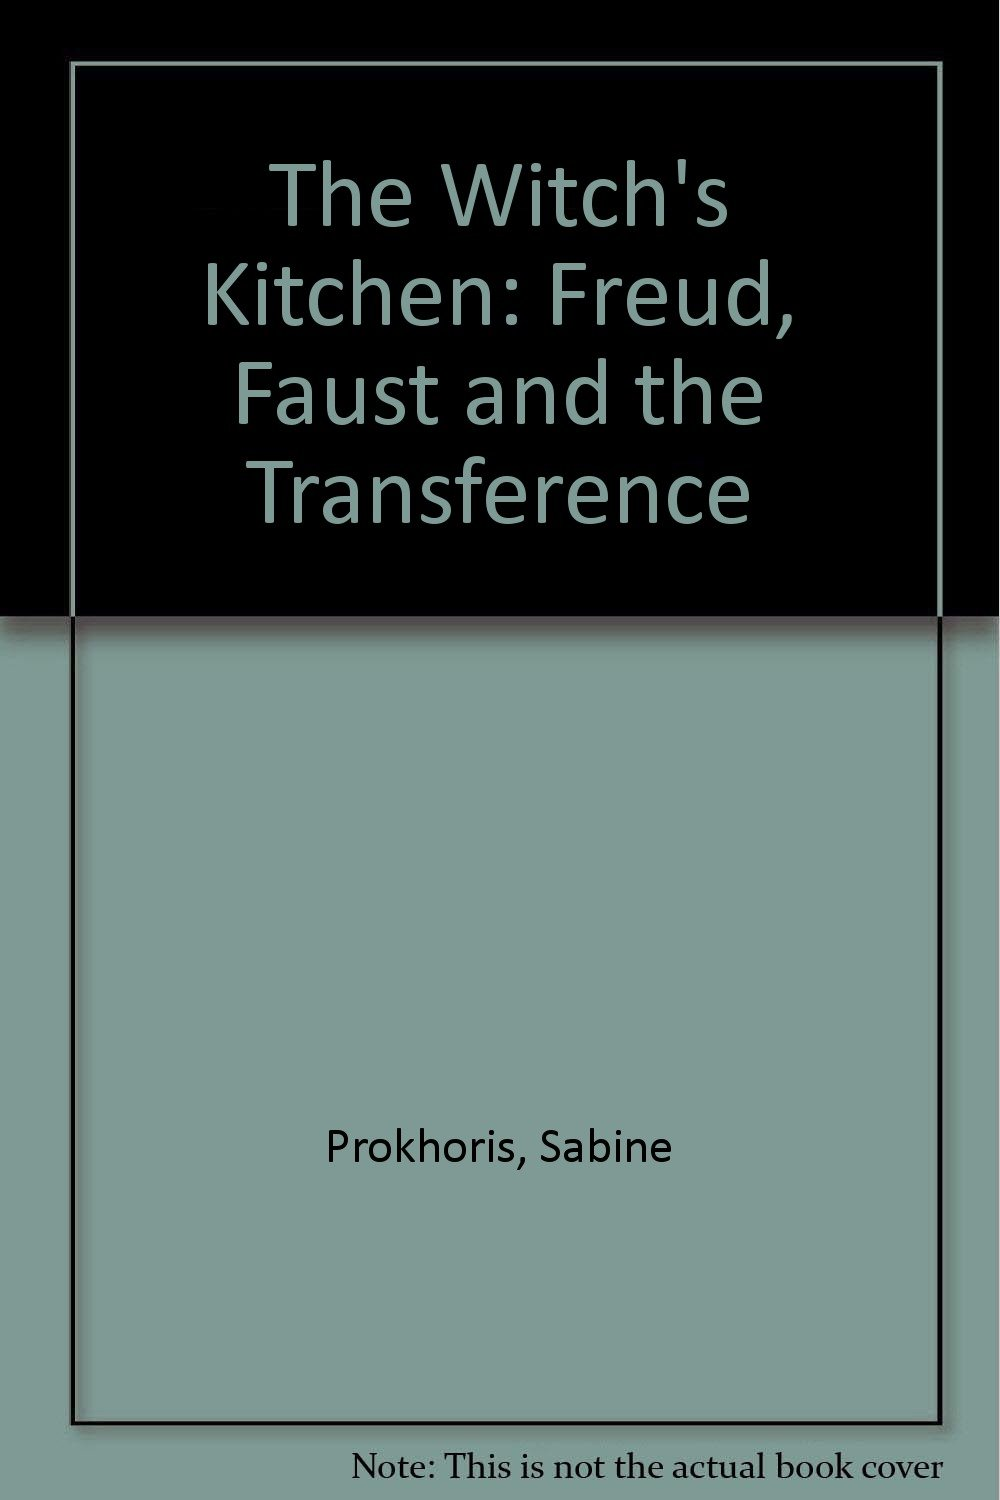 freud transference